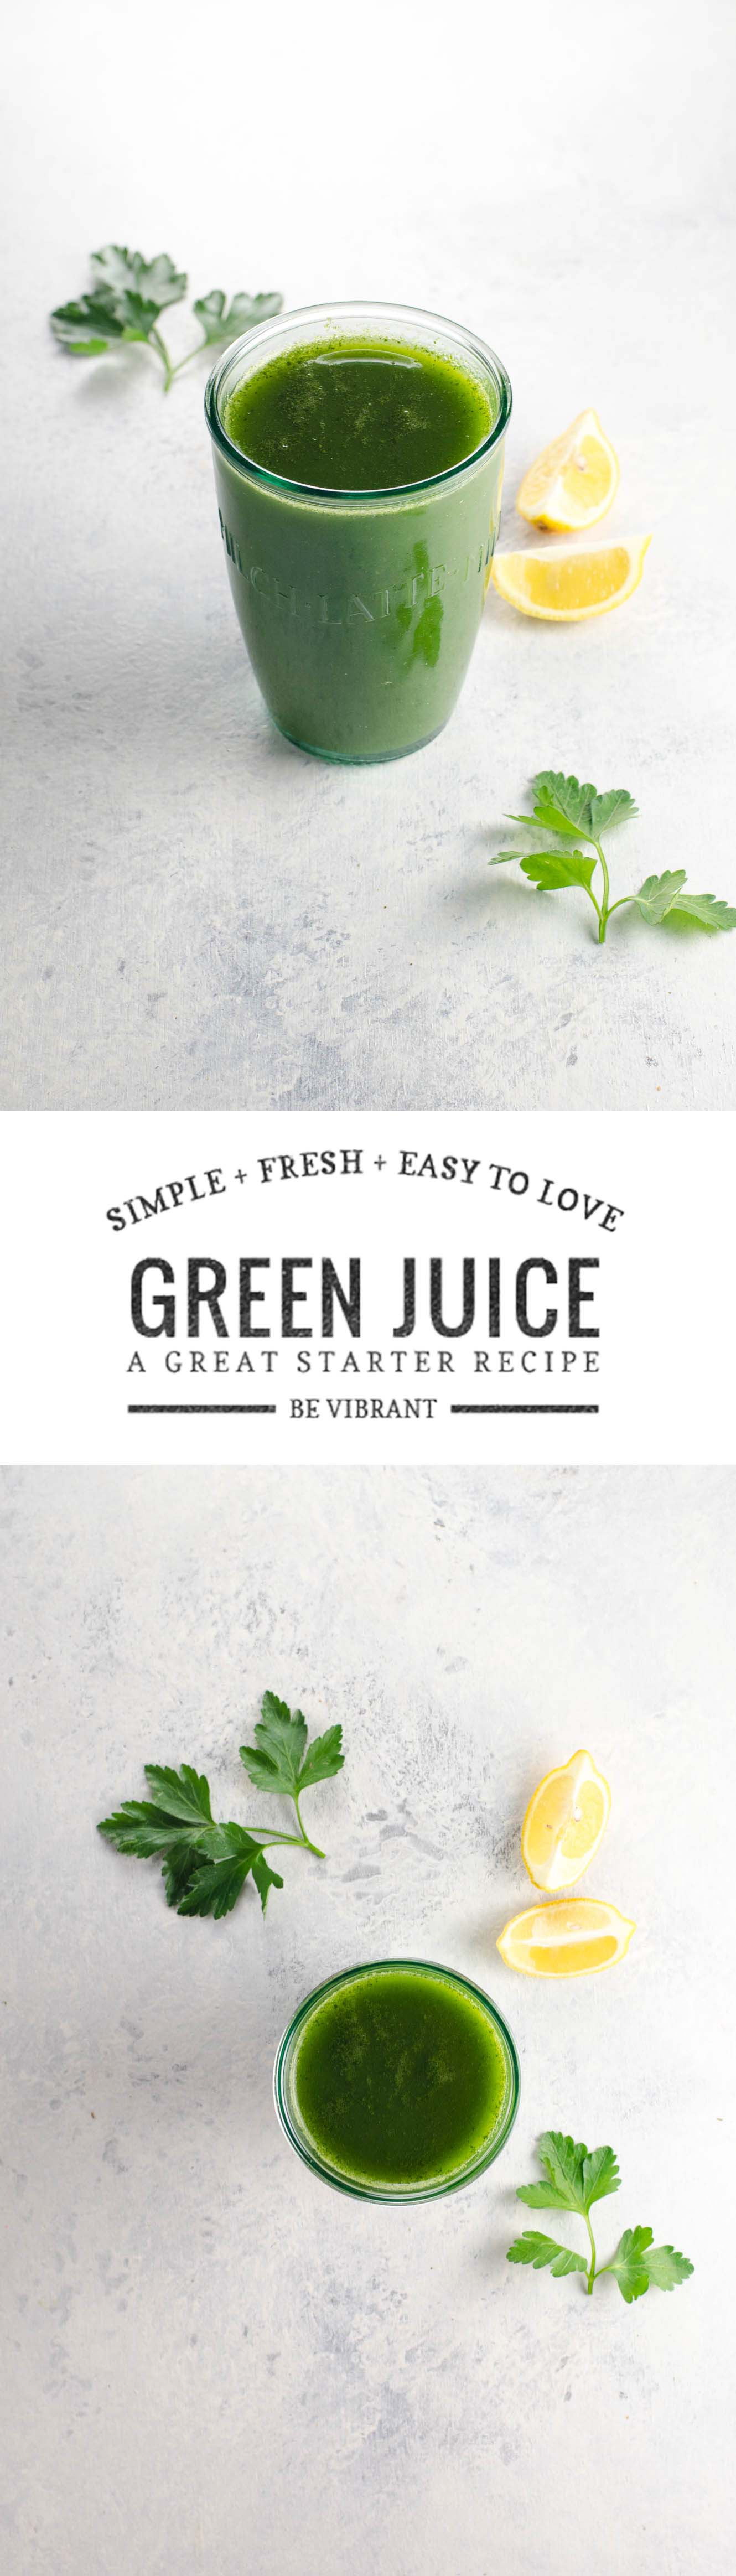 This simple, fresh, basic green juice recipe is great when you want a mellow juice vibe or if you're just starting out with green juice.